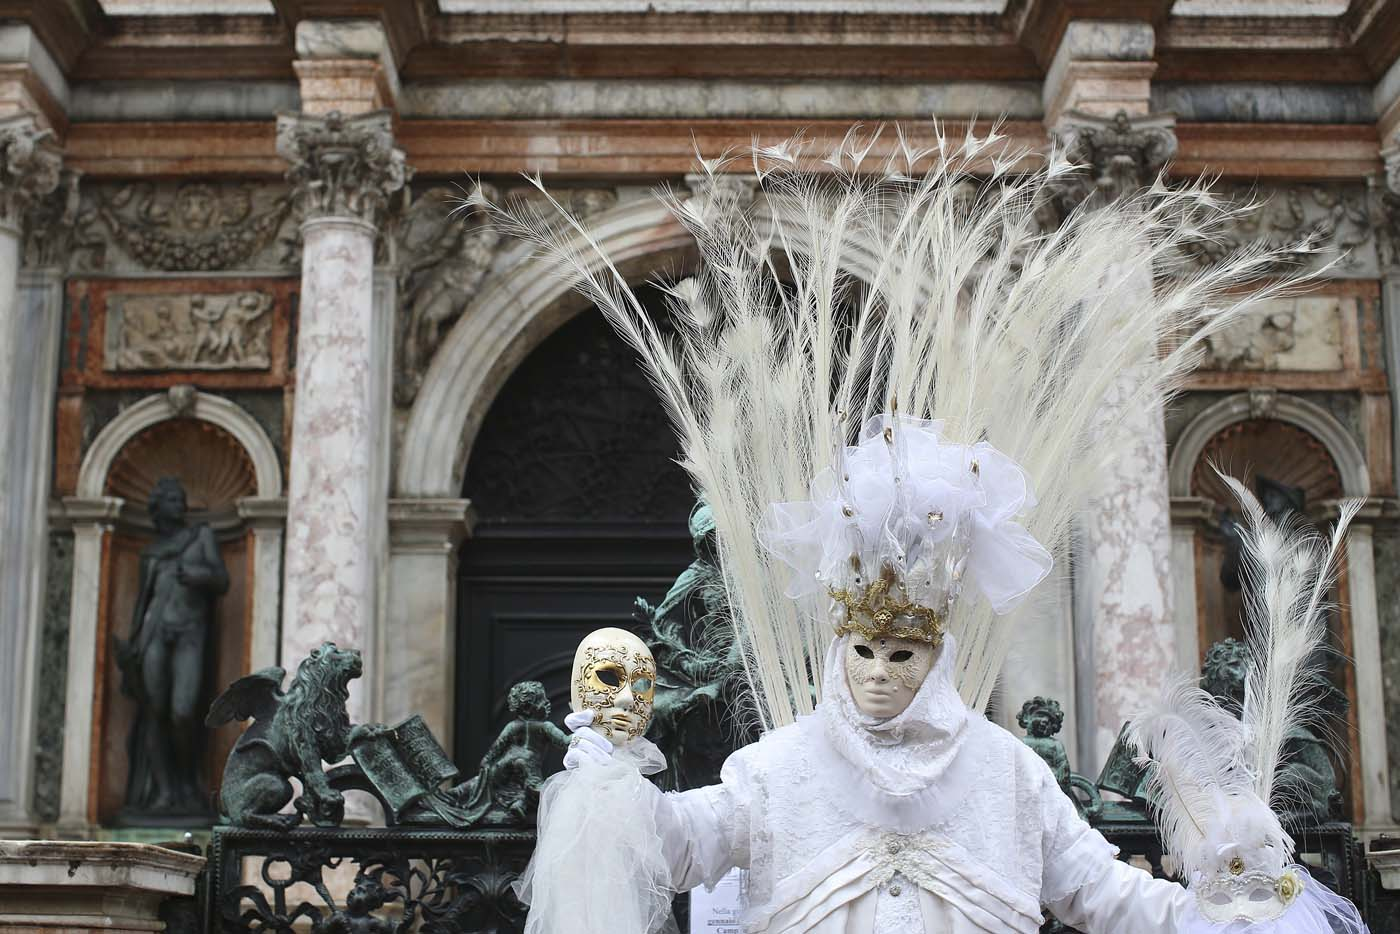 A masked reveller poses at San Marco Piazza during the Venice Carnival, January 31, 2016. REUTERS/Alessandro Bianchi